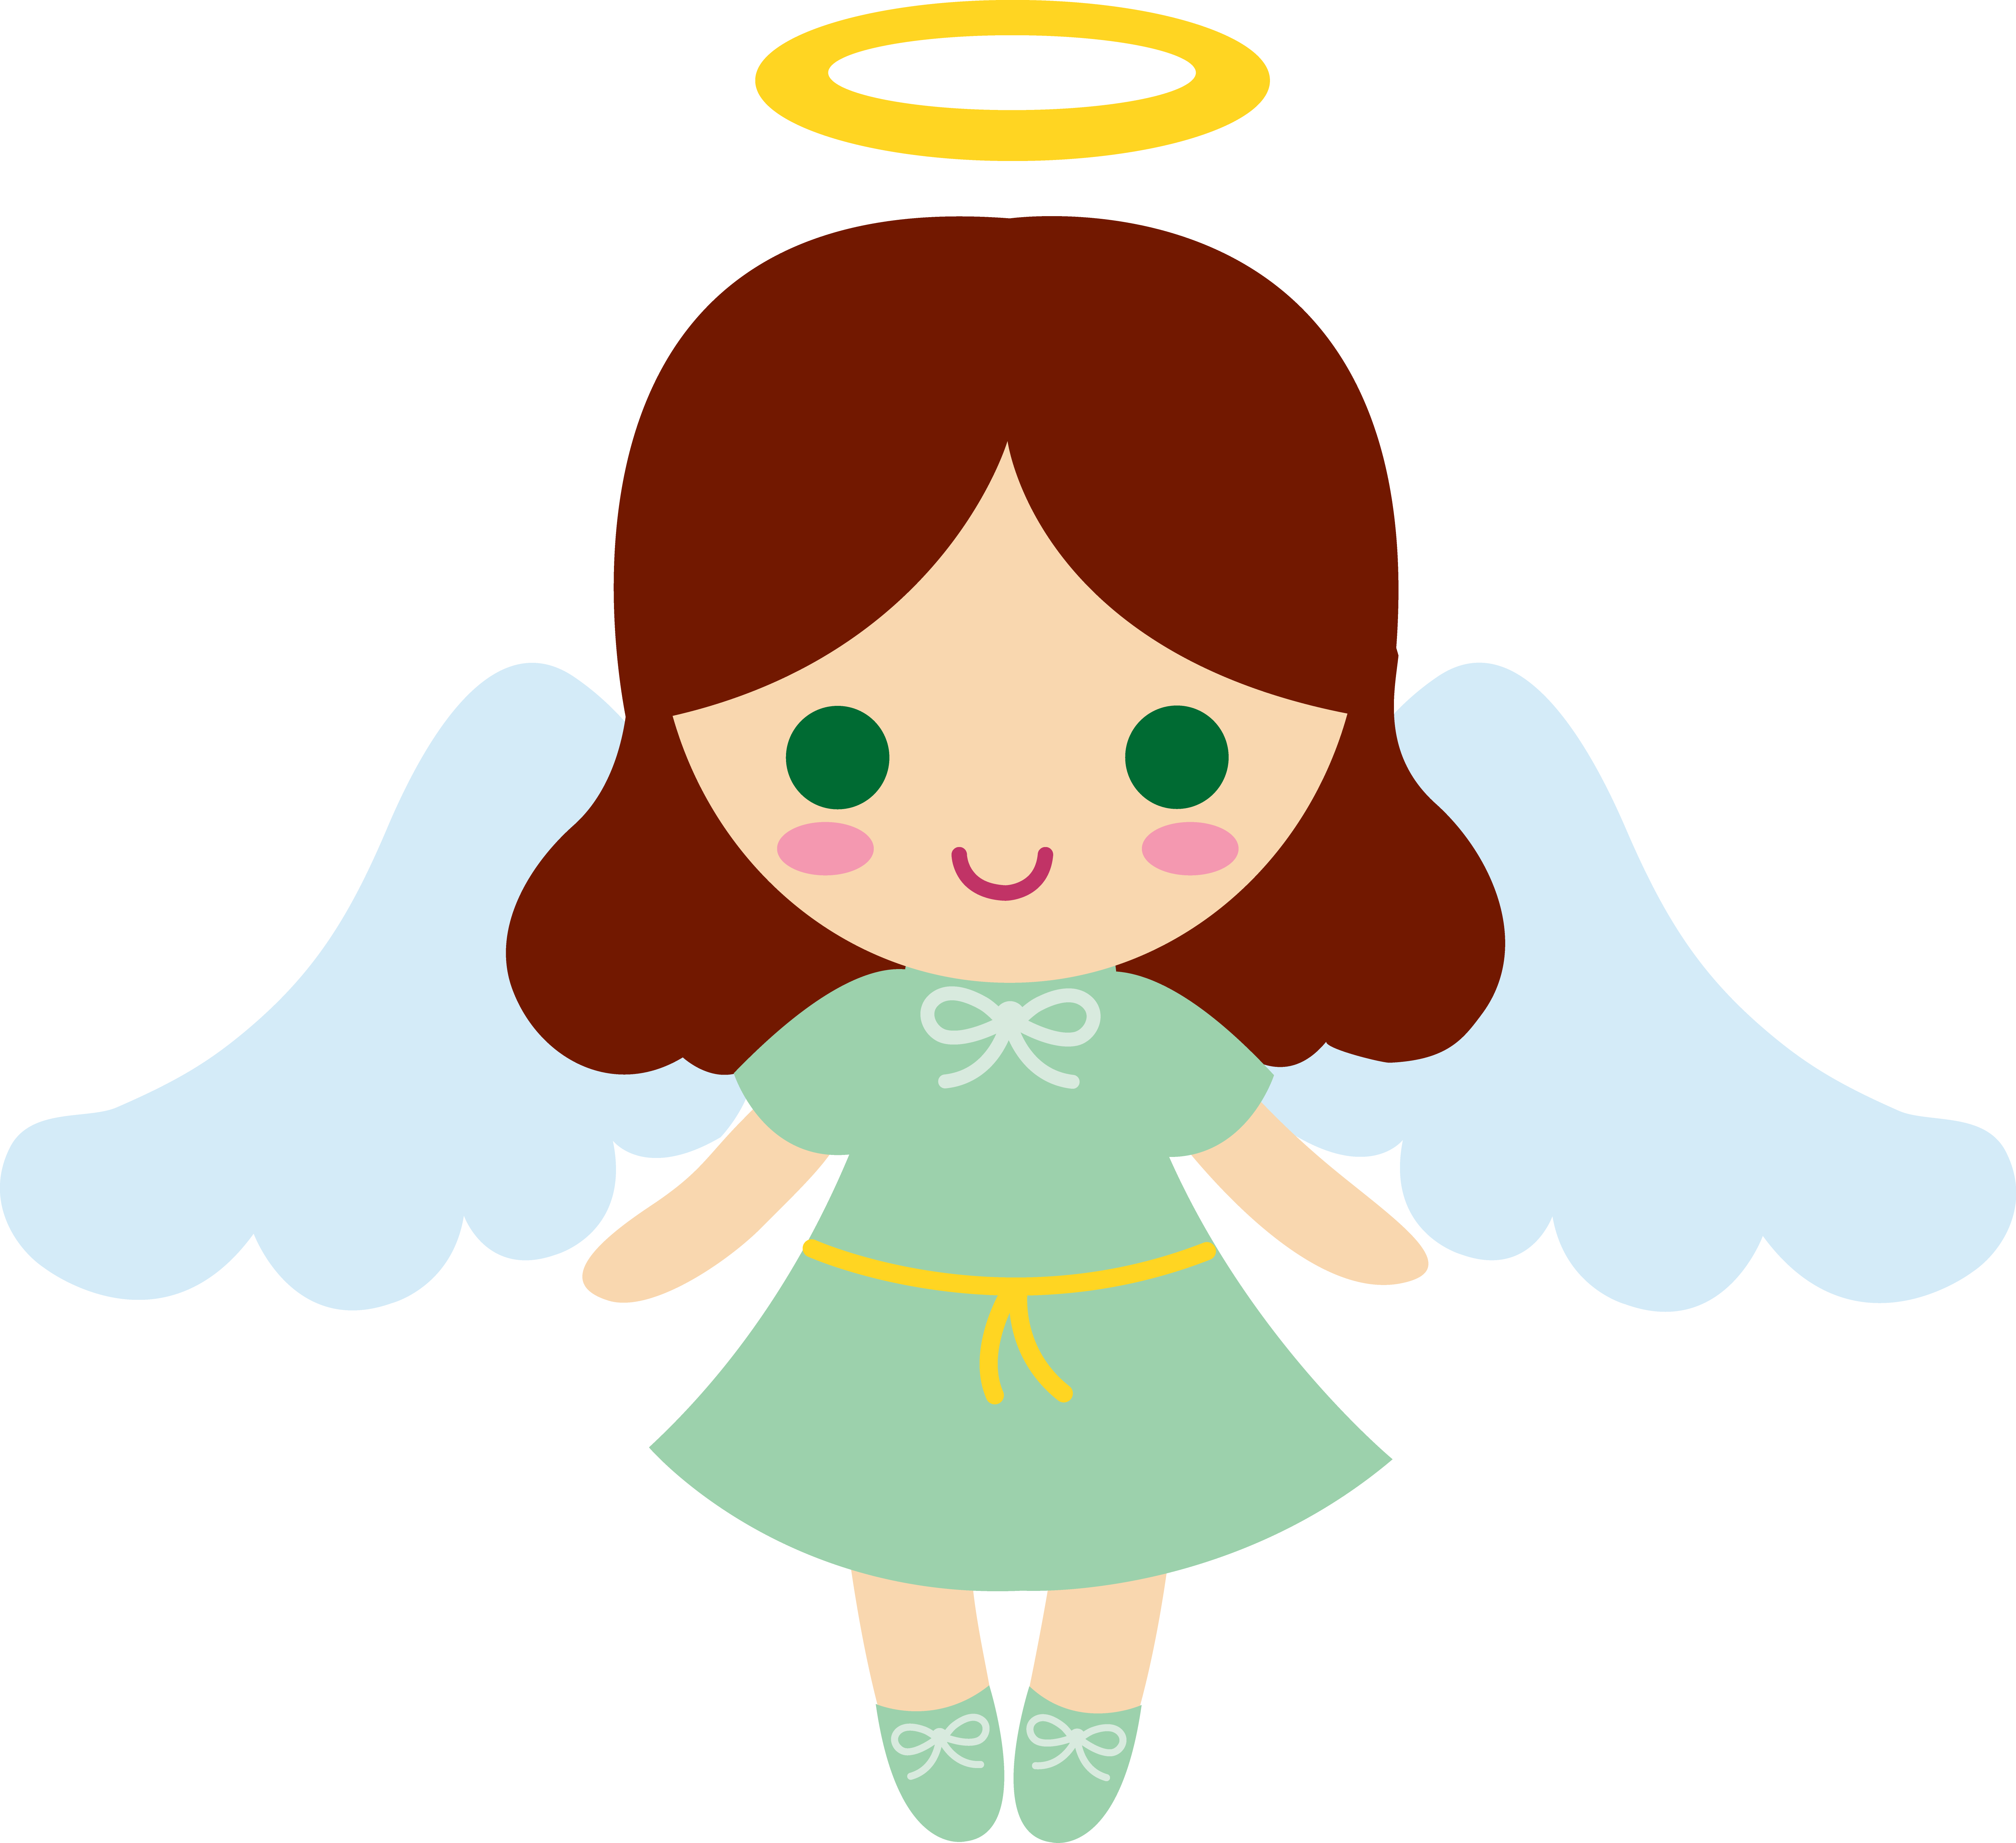 Words clipart angel. Angelgirl cartoons little brunette